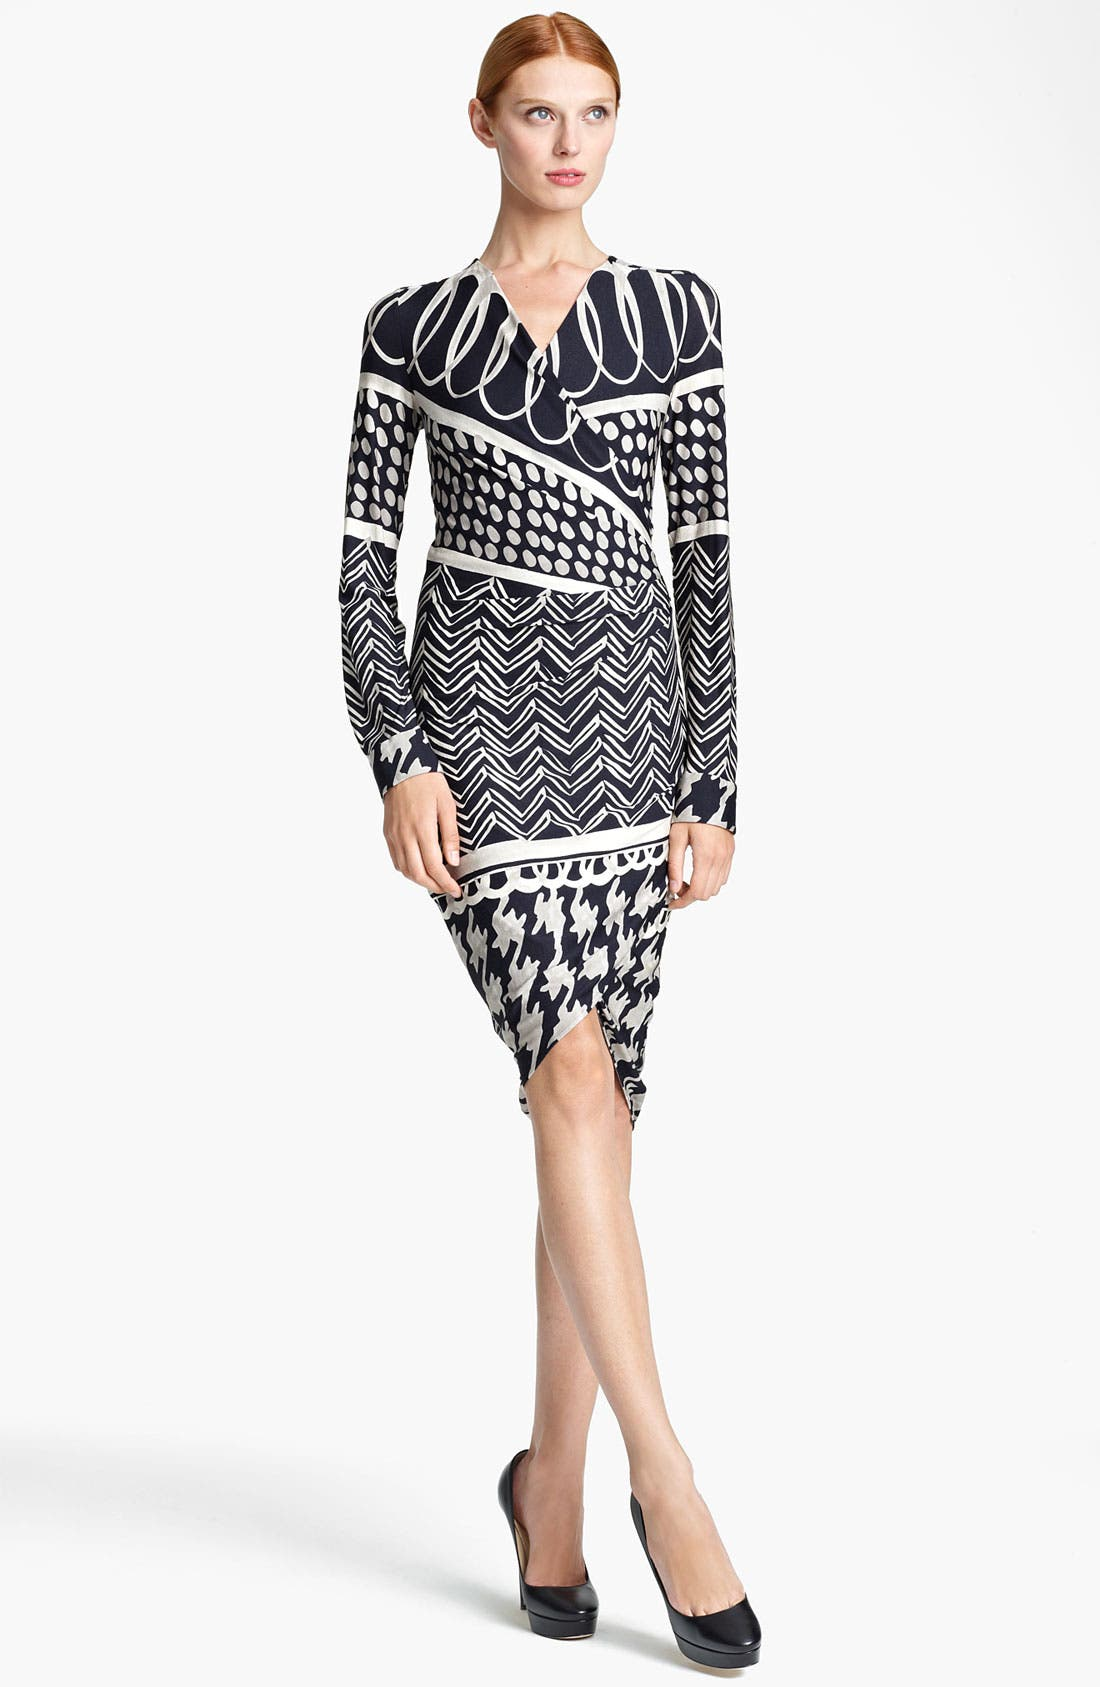 Alternate Image 1 Selected - Max Mara 'Eneide' Print Jersey Dress